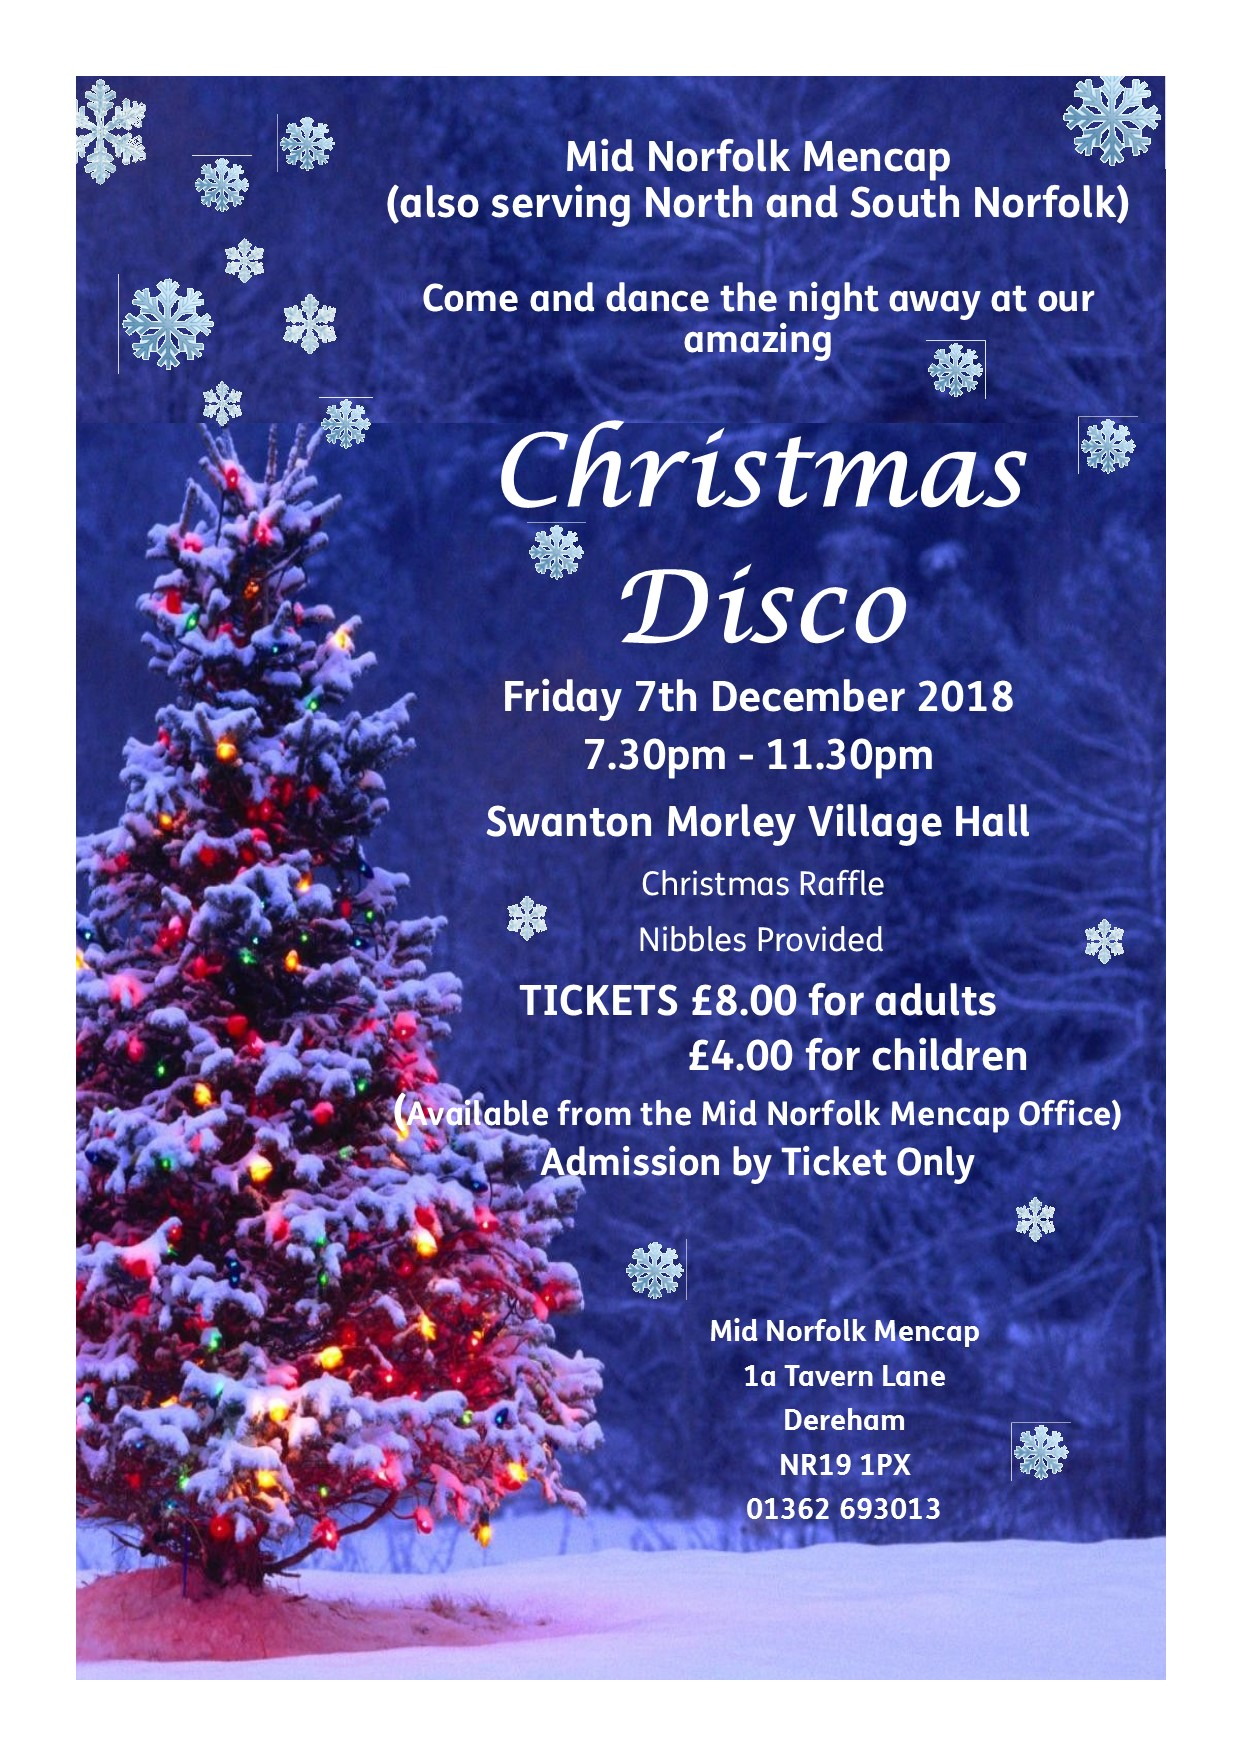 2018 Christmas Disco image